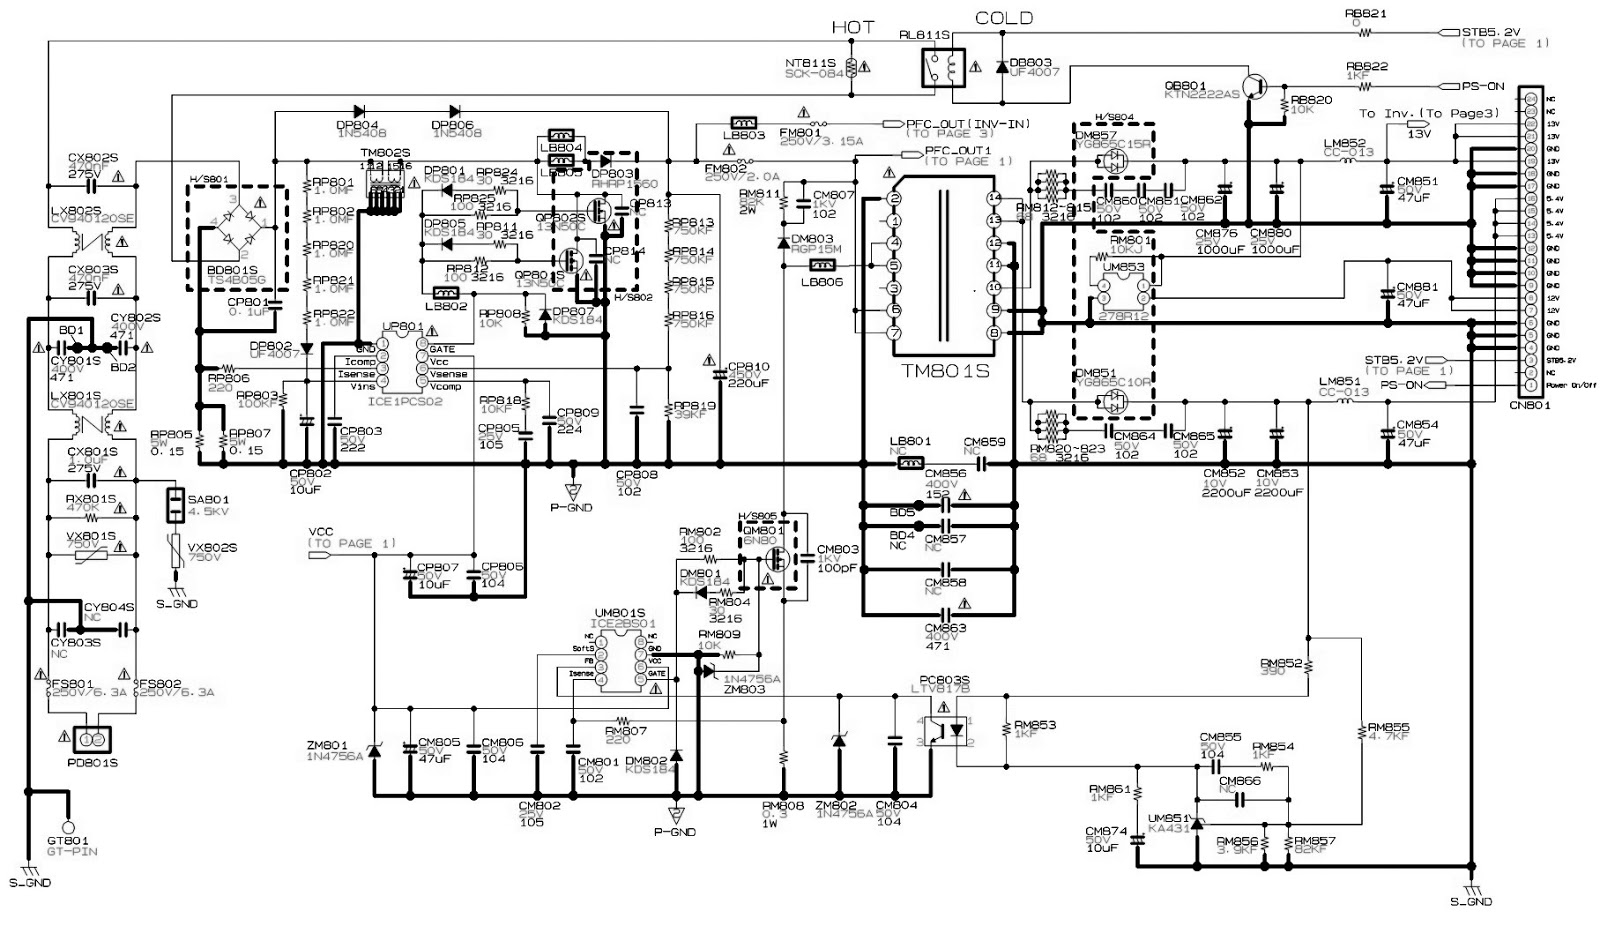 Samsung Tv Surround Sound Wiring Diagram Just Another Lcd Schematic Name Rh 6 16 4 Systembeimroulette De Bose 51